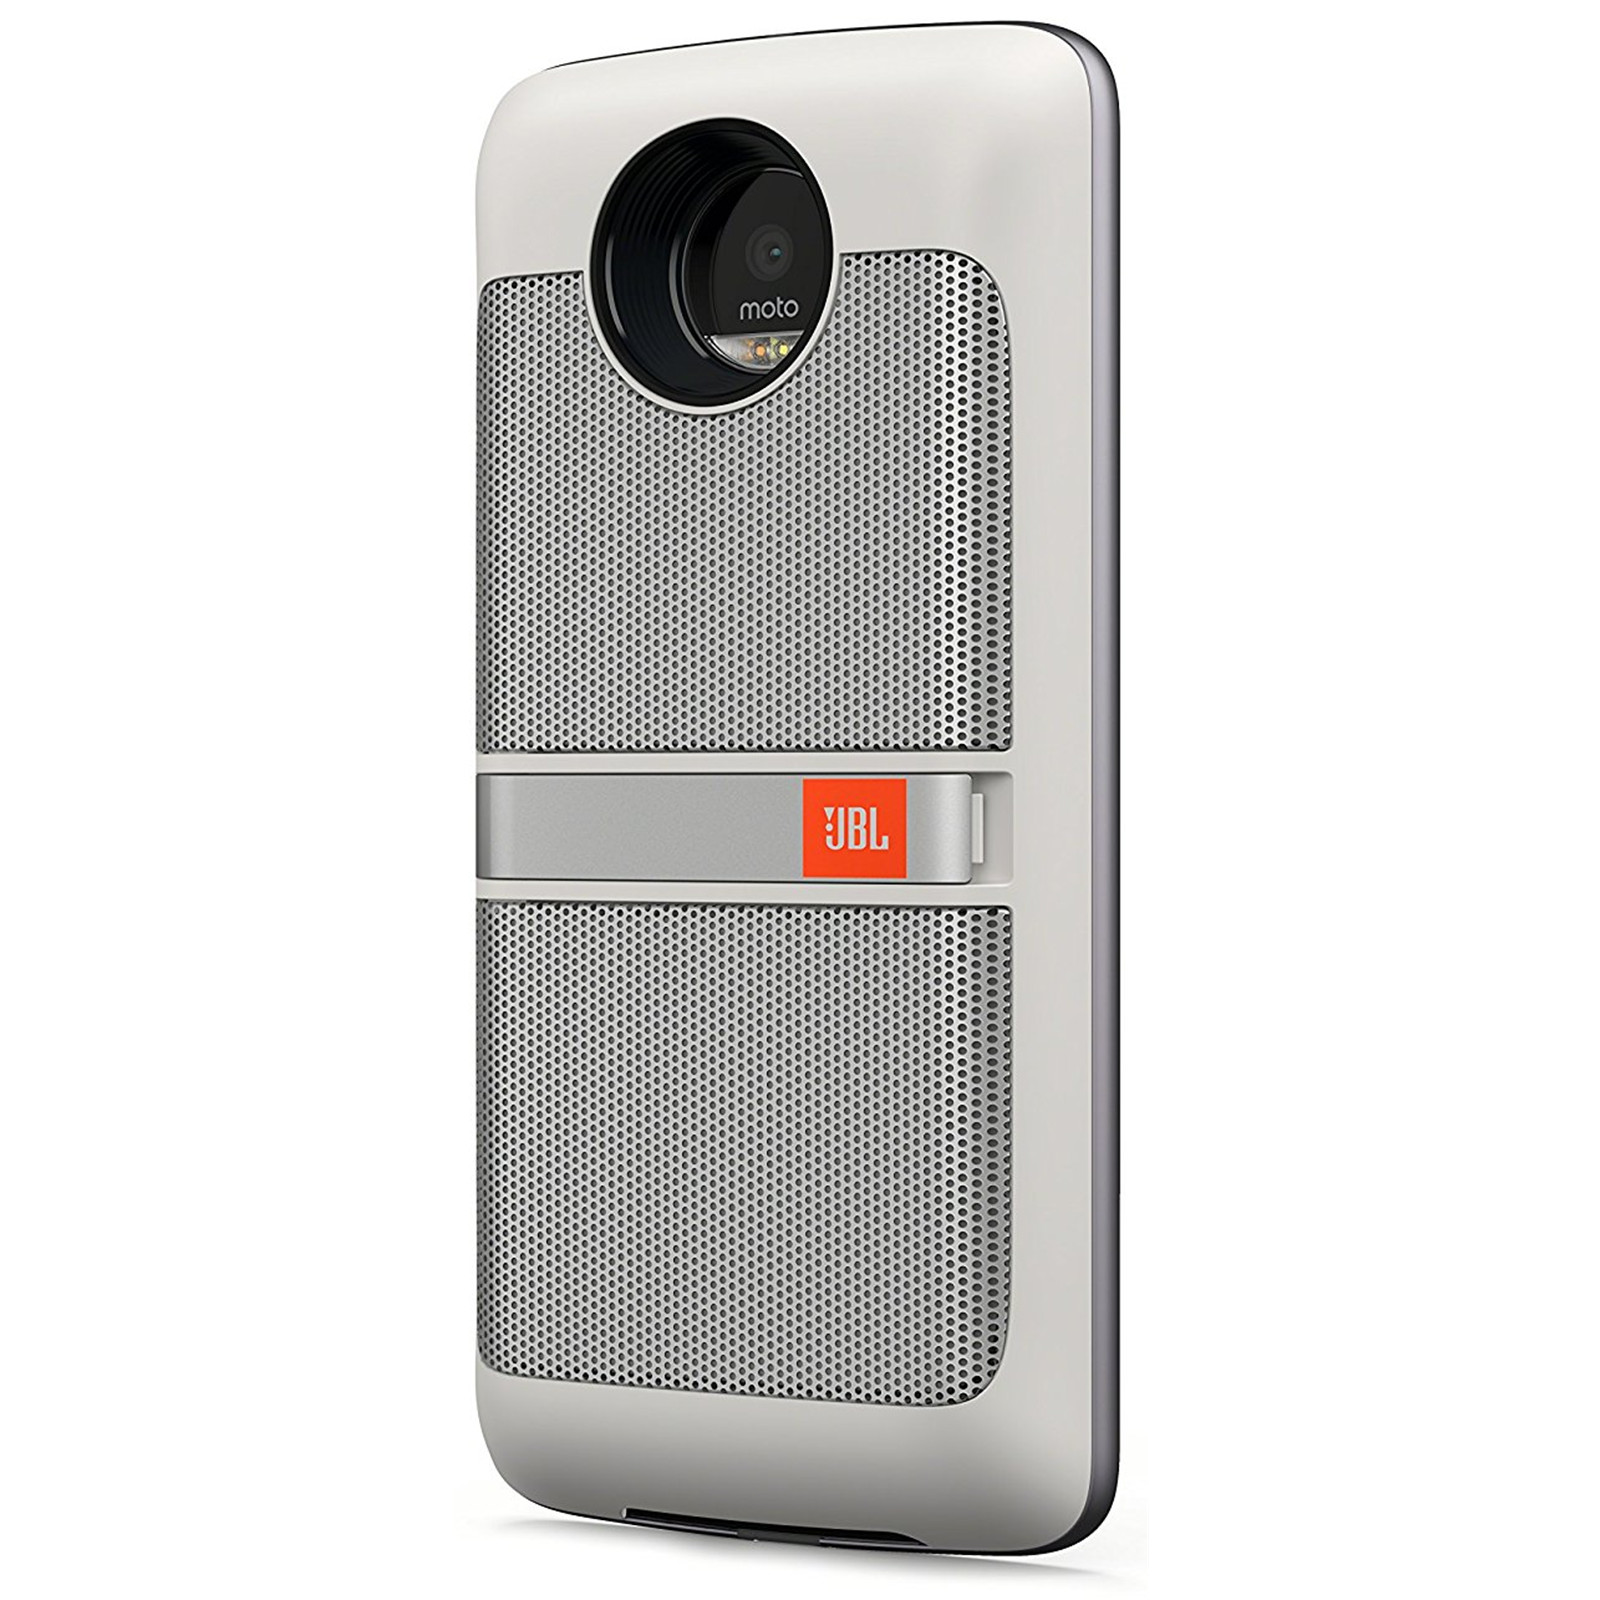 Motorola Moto Mod JBL SoundBoost Speaker 1st Gen - White - For music, video, & conference calling with integrated kickstand Compatible with the Moto Z ...